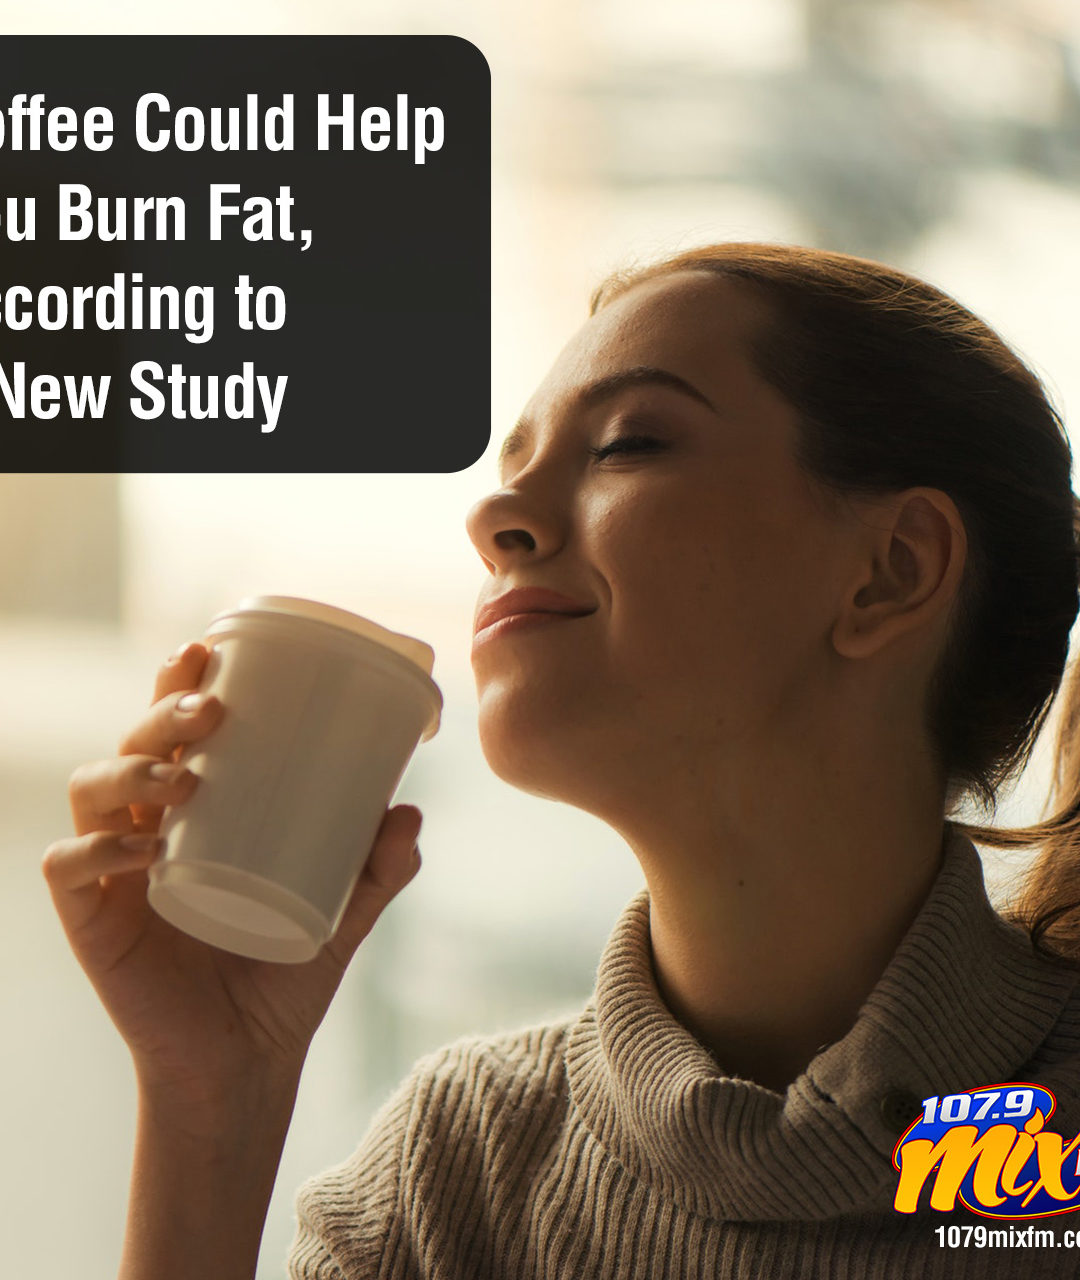 Coffee Could Help You Burn Fat, According to a New Study